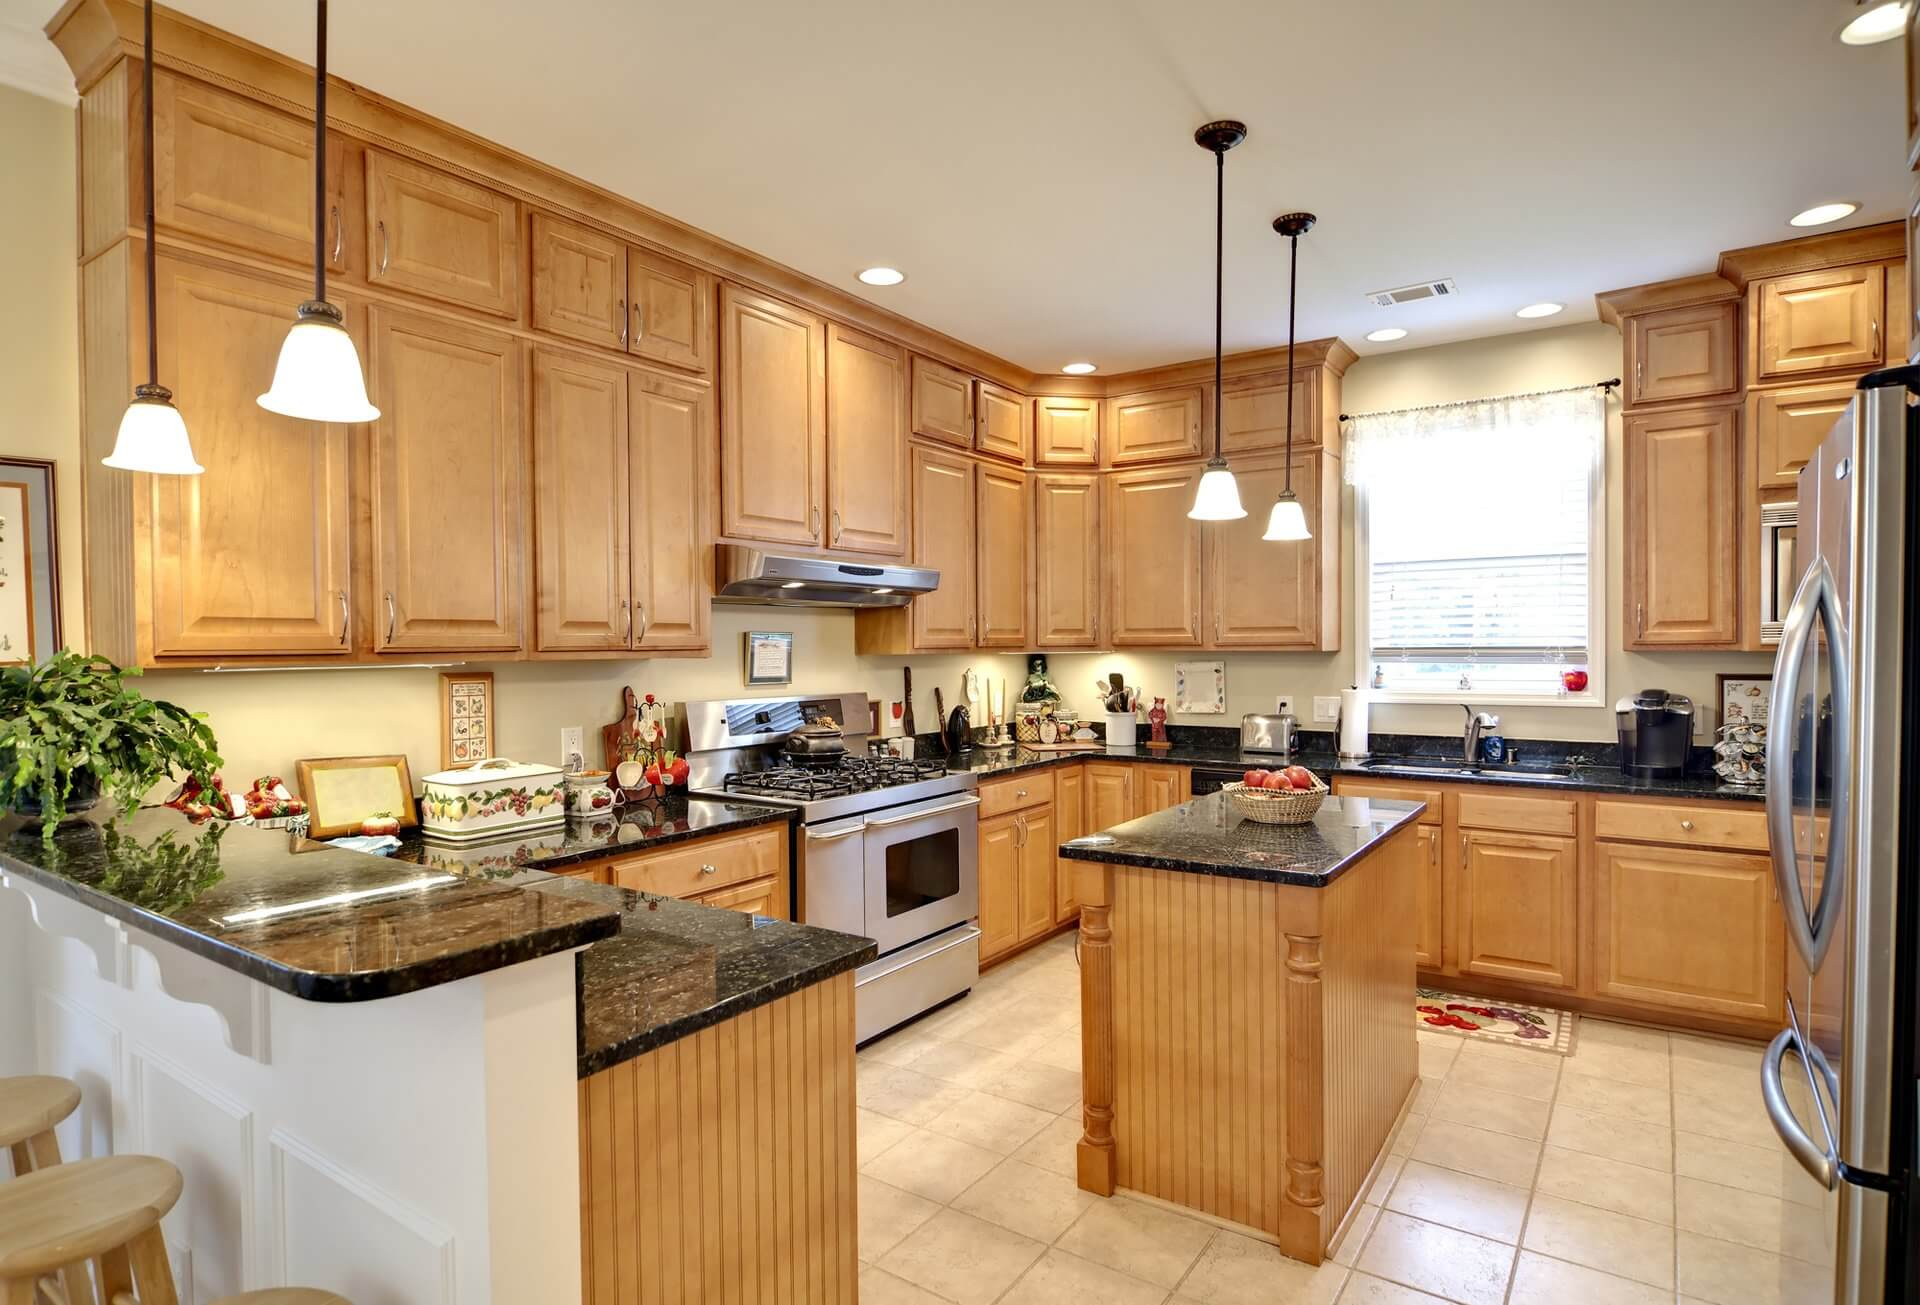 kitchen remodeling kitchen remodeling rochester ny Image description